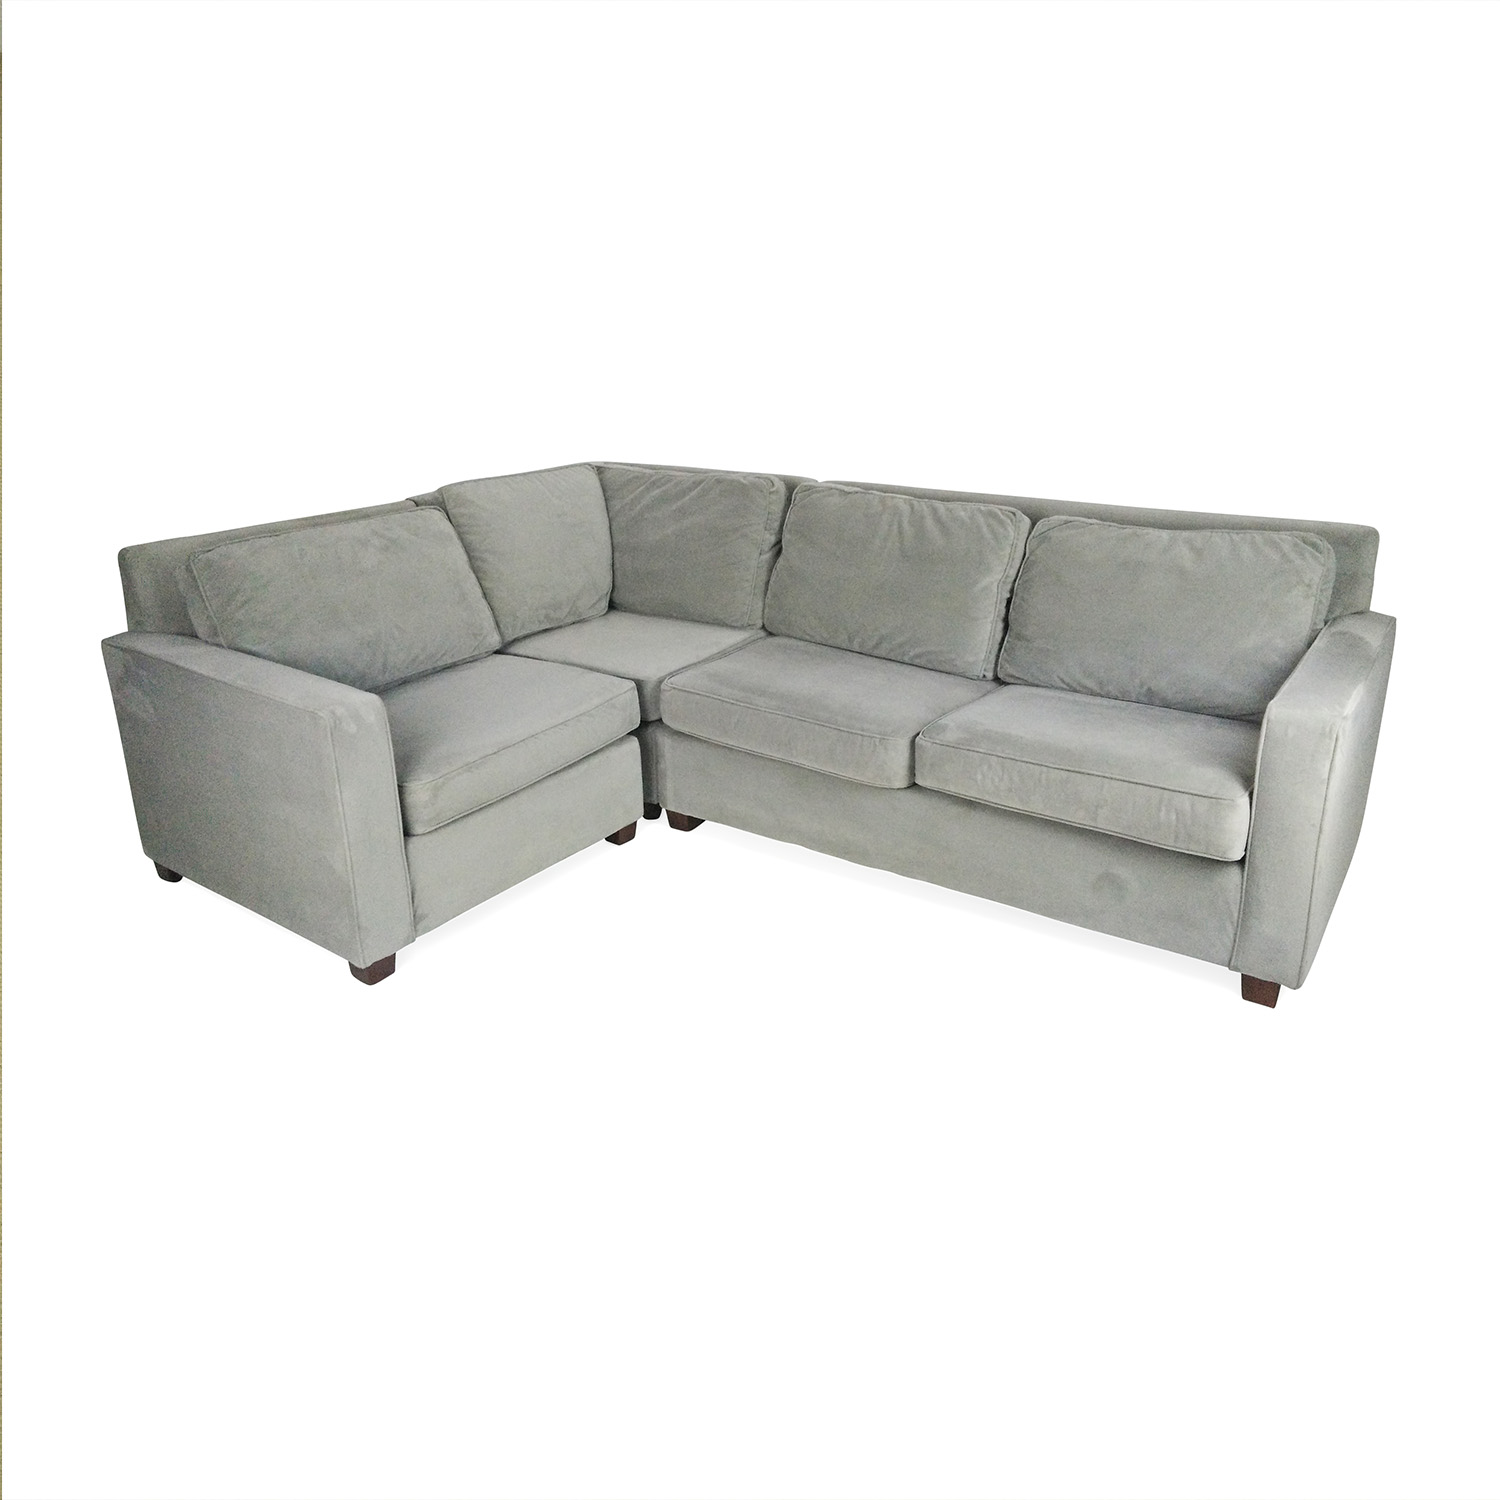 small sectional sofa west elm sofas and chairs at next 49 off henry 3 piece